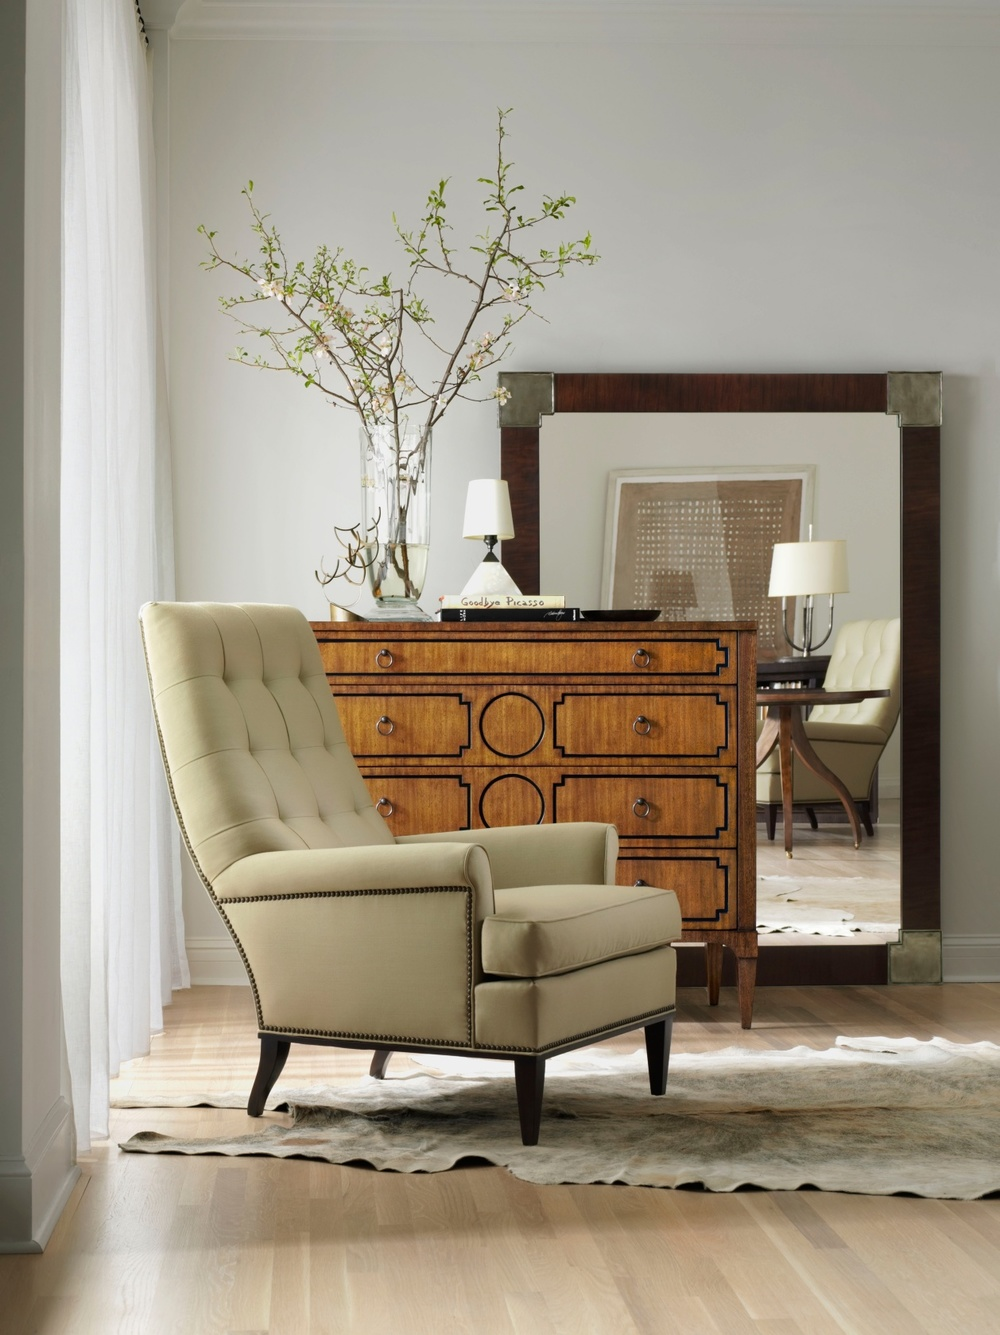 Hickory Chair - Cline Biscuit Stitched Chair